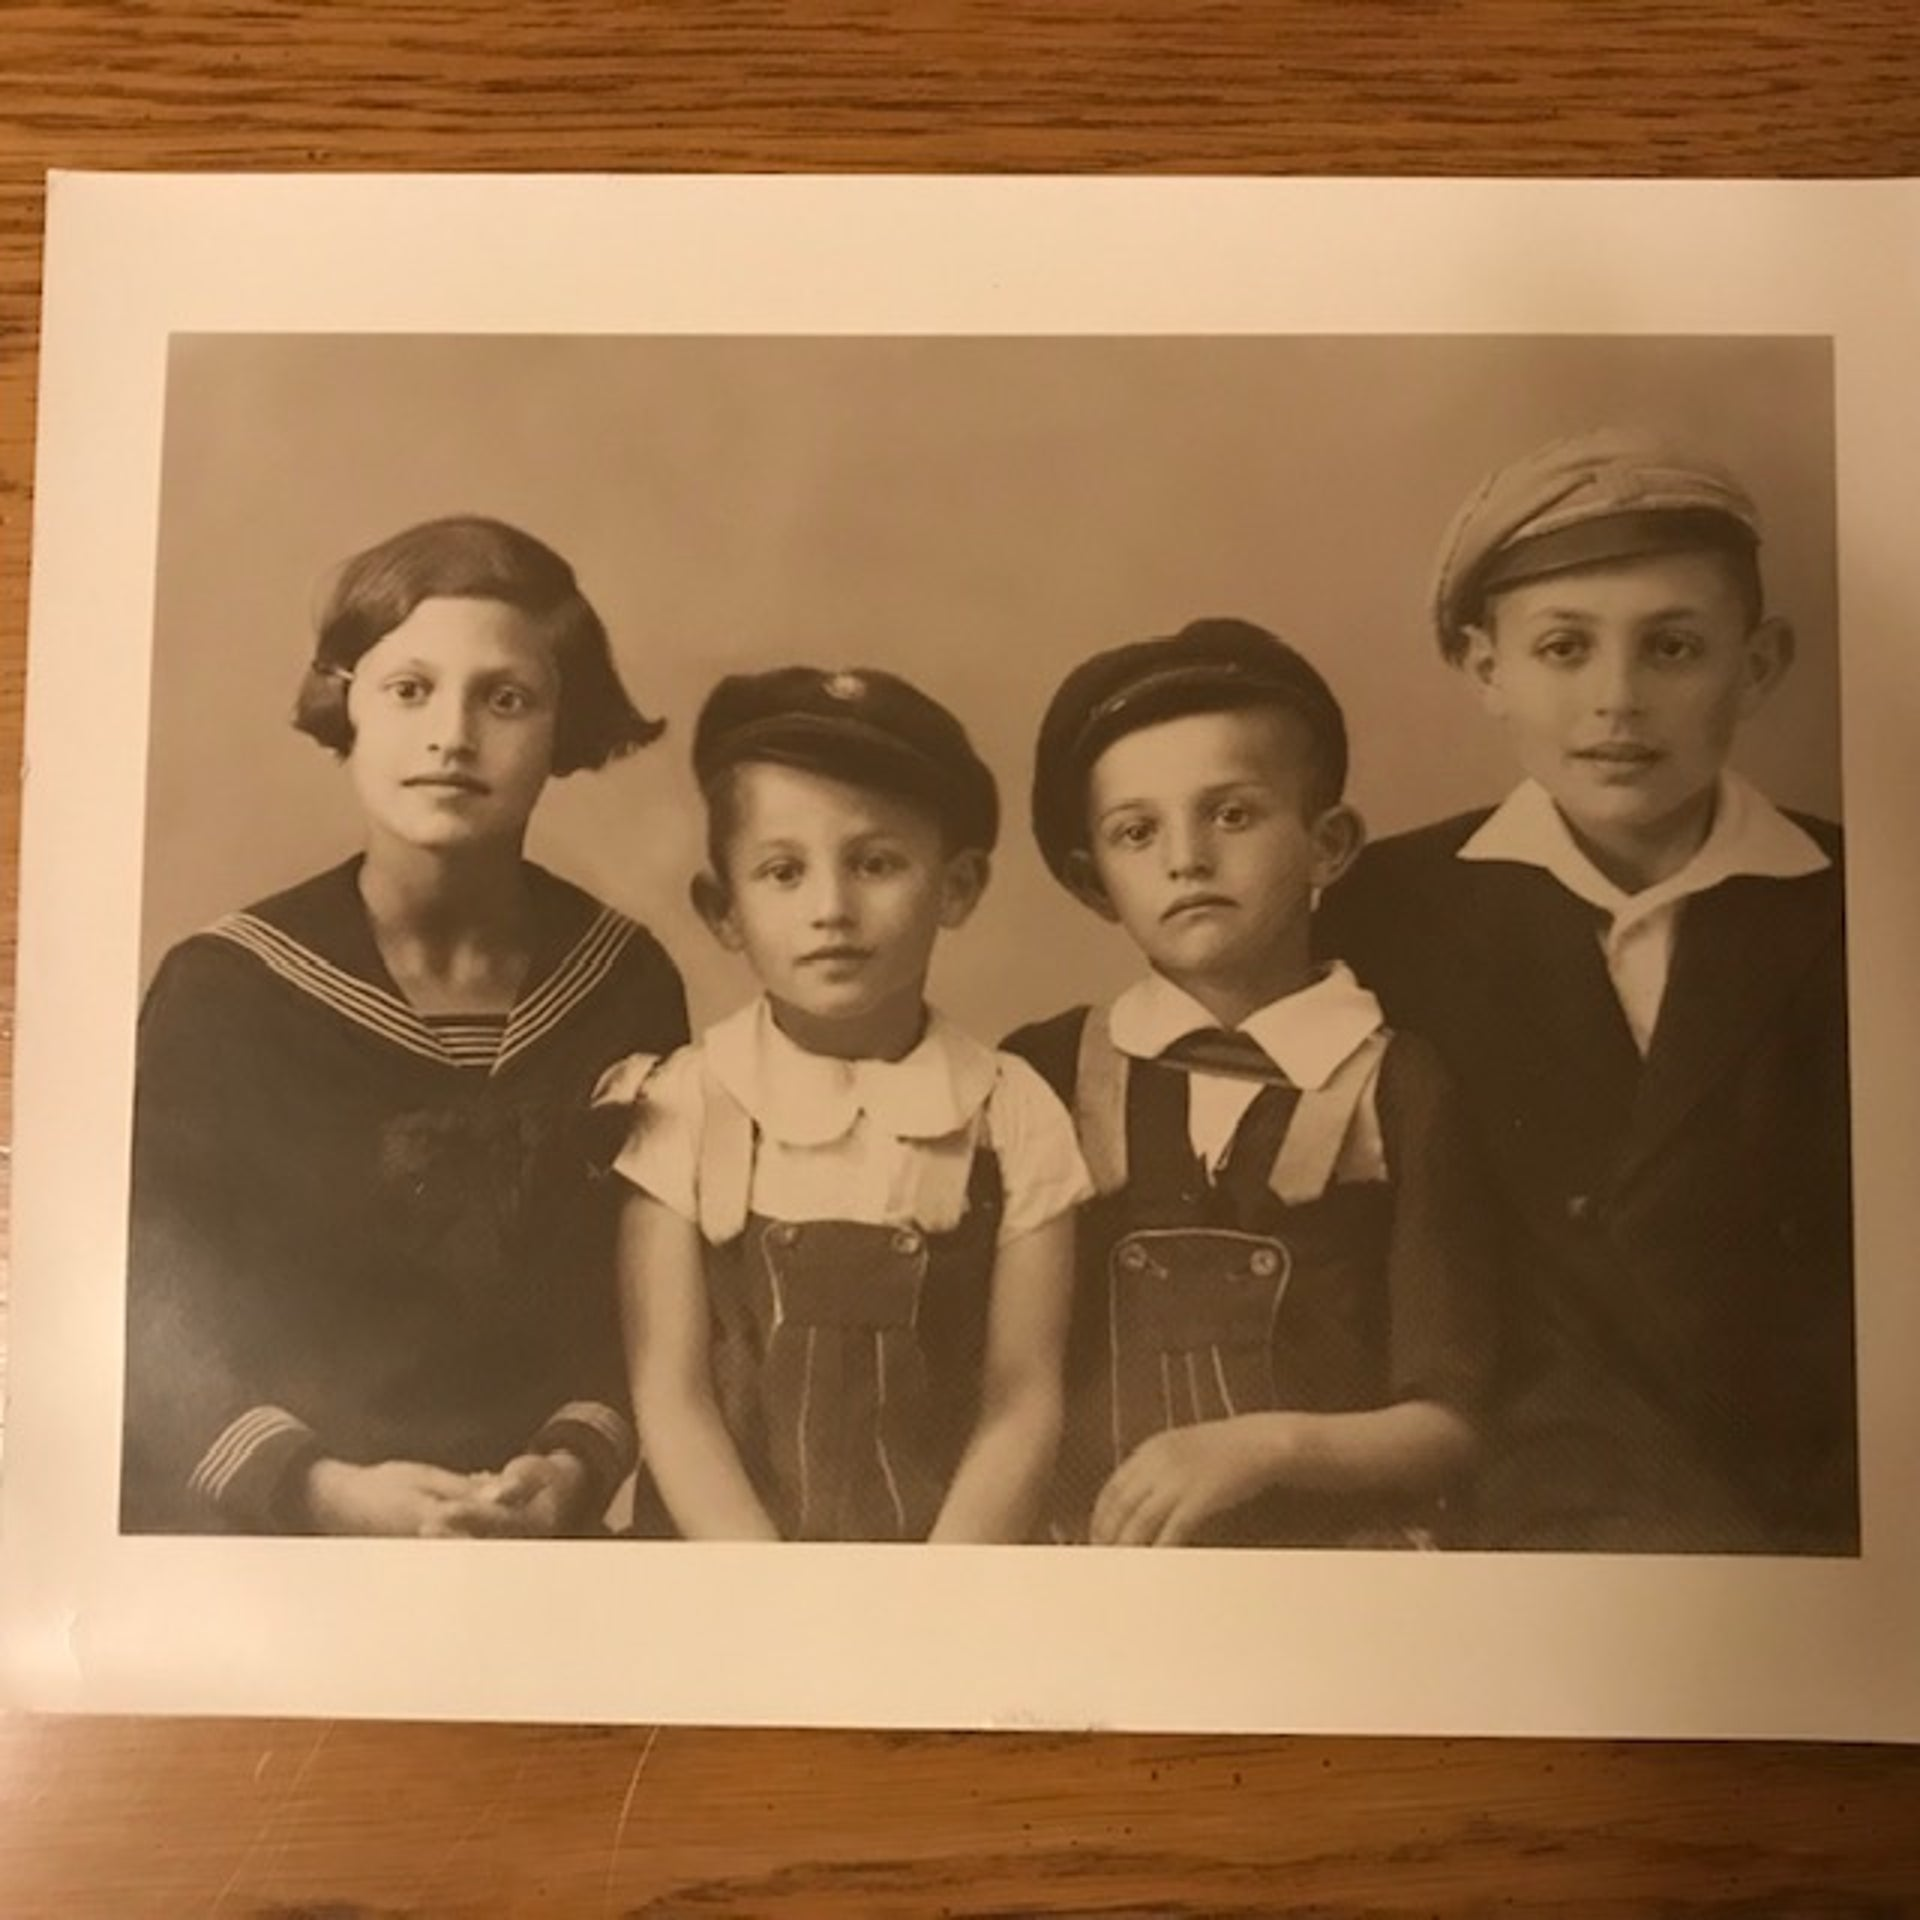 An undated picture of Judit Ornstein with three of her brothers (from left): Tibor (Tibi), Zoltán (Zoli) and Paul.